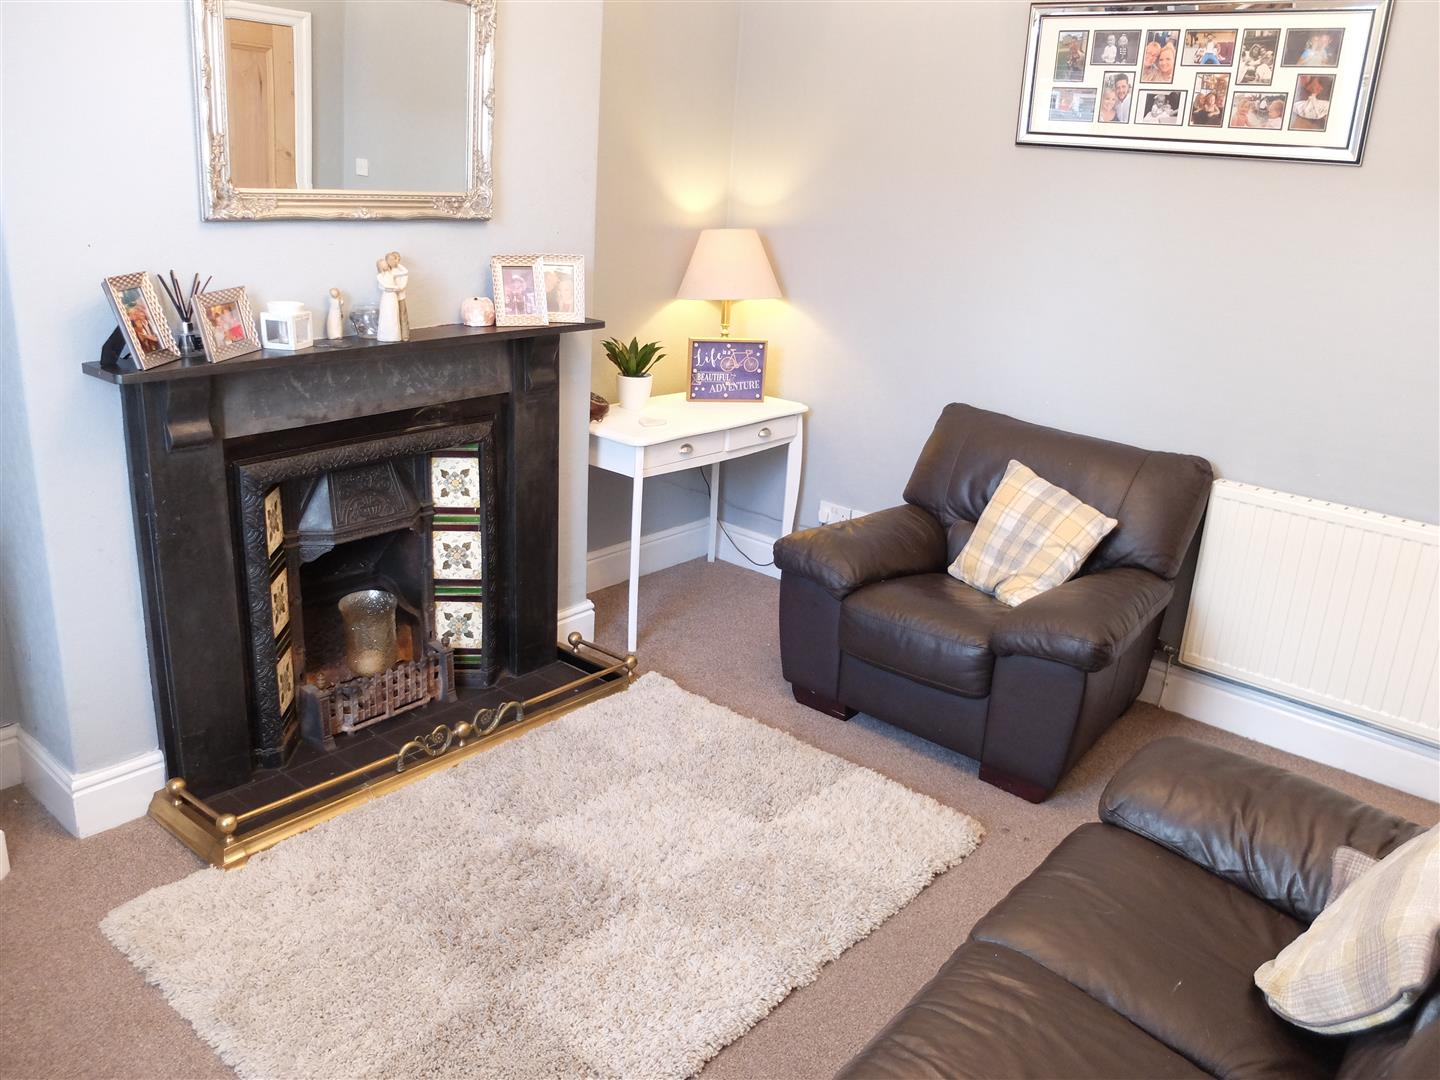 4 Bedrooms House - Terraced For Sale 8 Cranbourne Road Carlisle